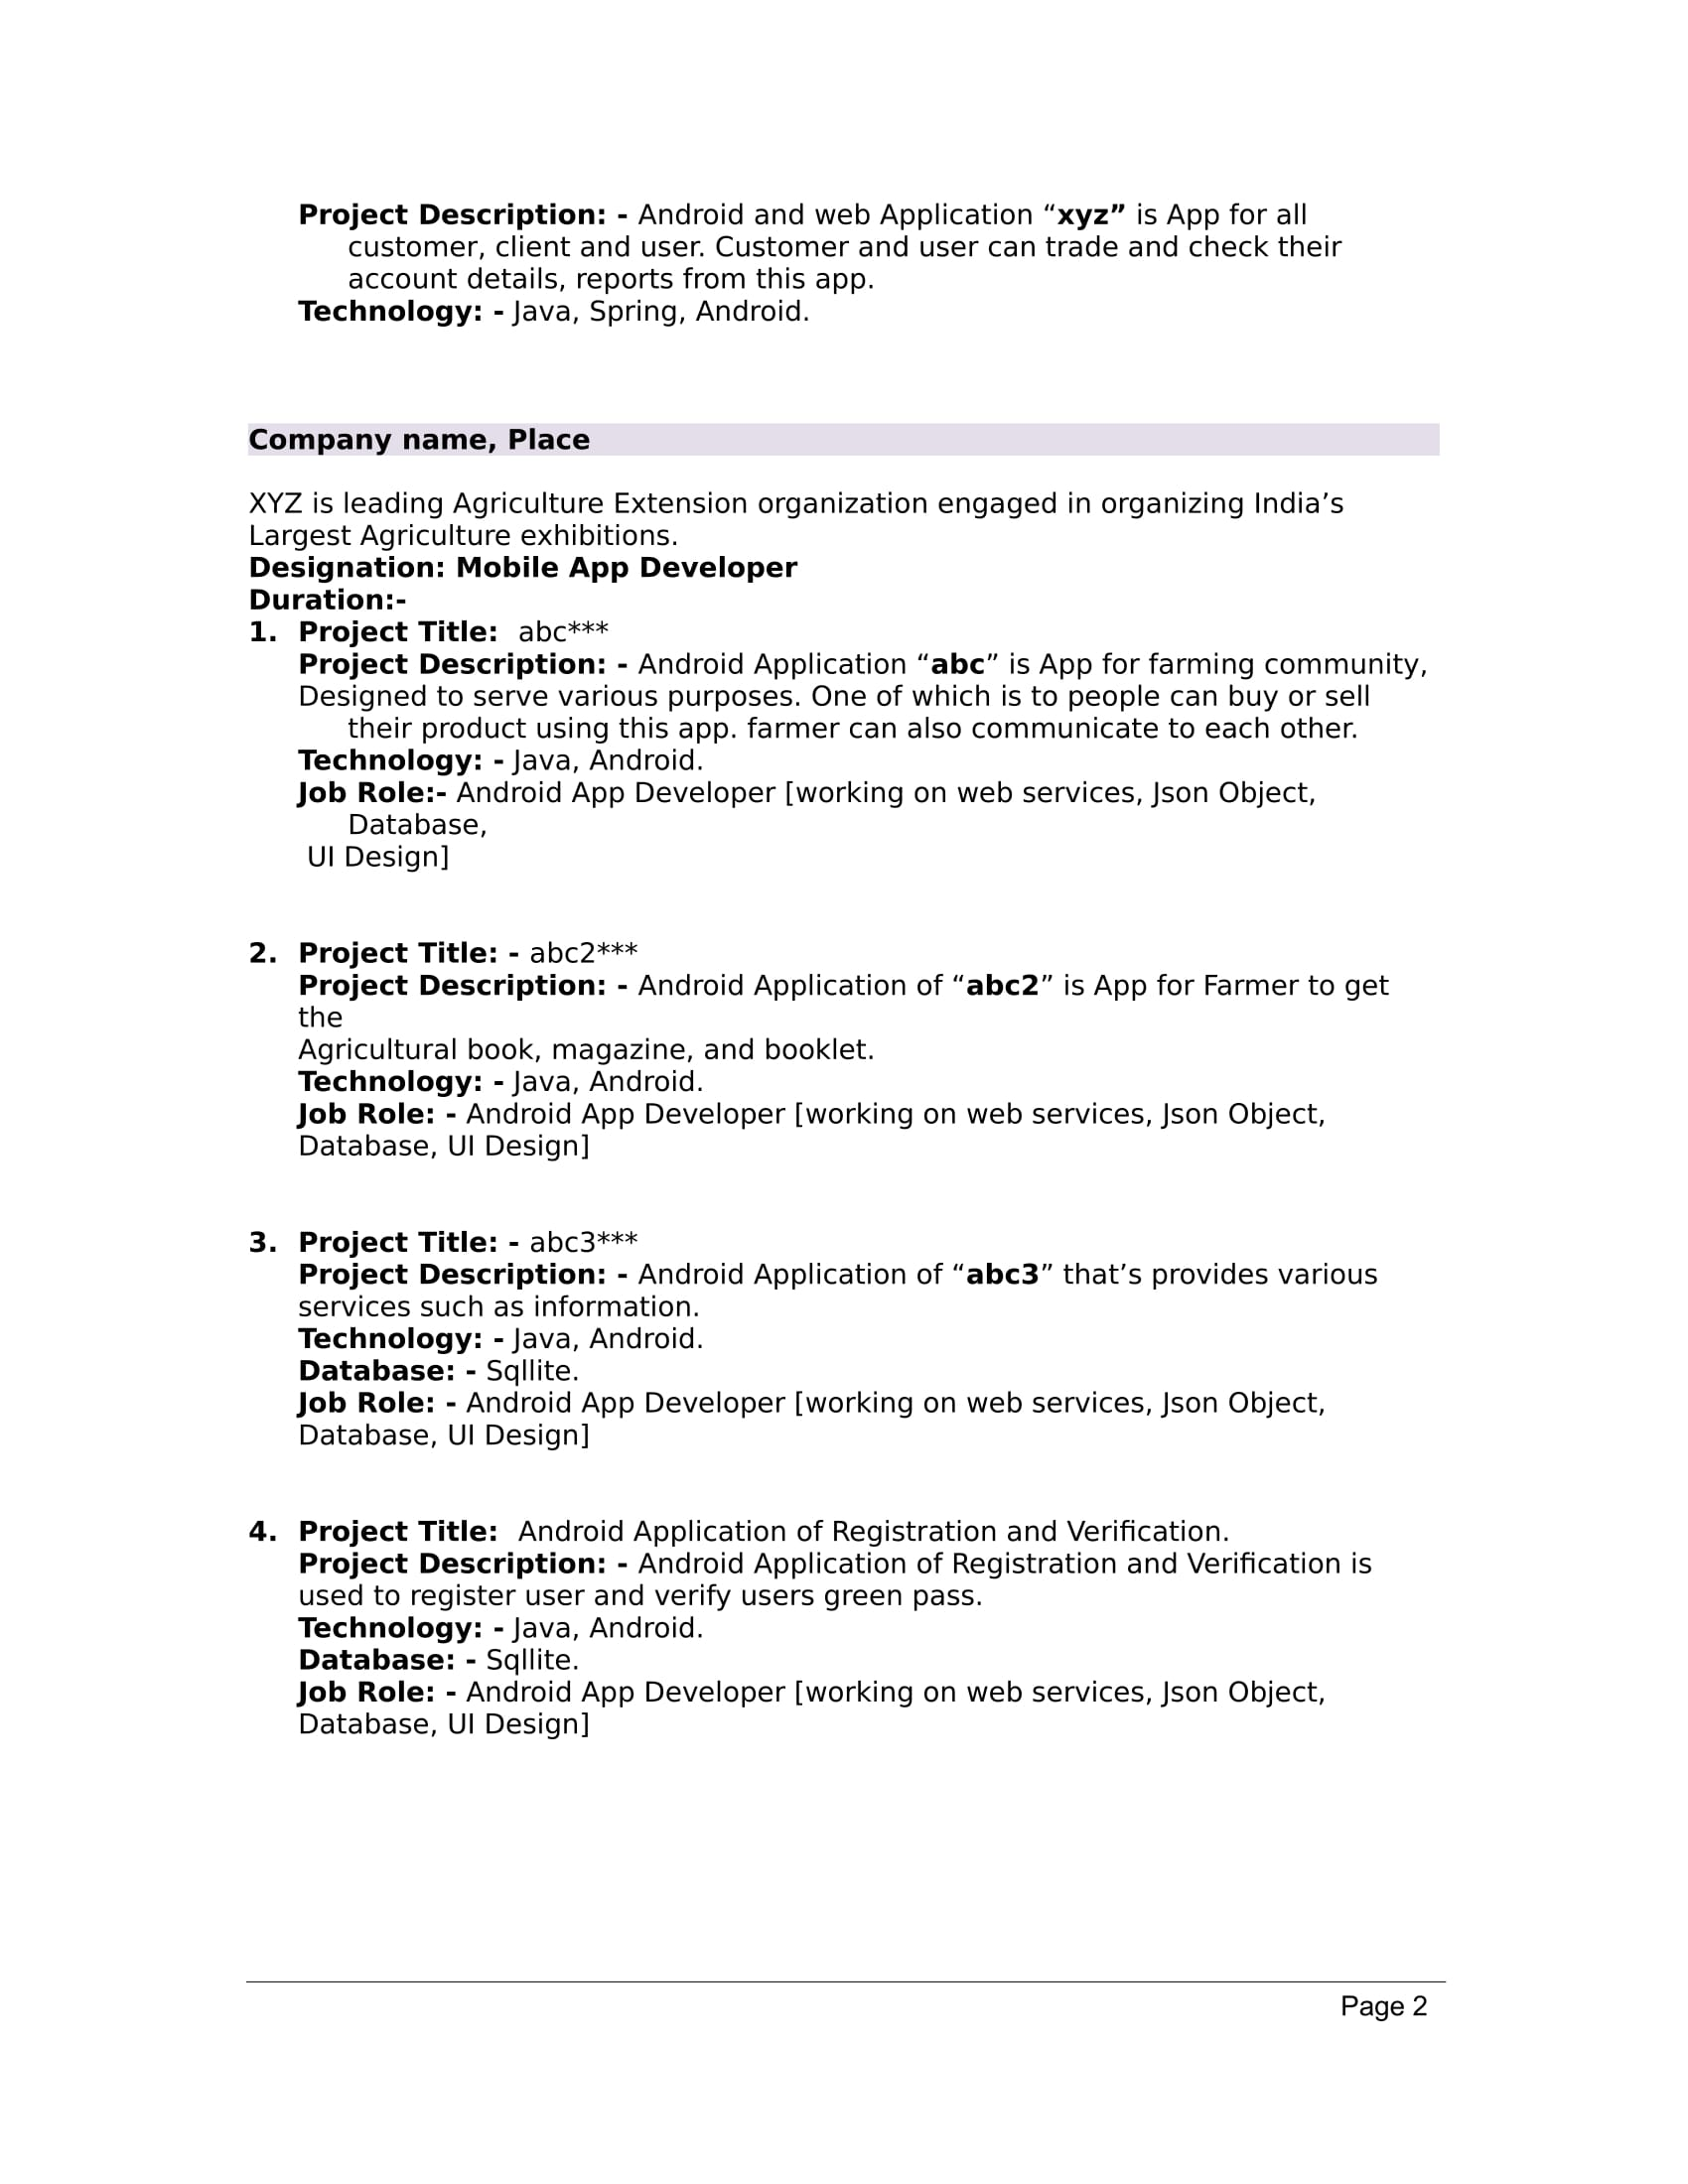 Sample Resume For Fresher Computer Science Engineer Resume For Cse Freshers Pdf 11 Computer Science Resume